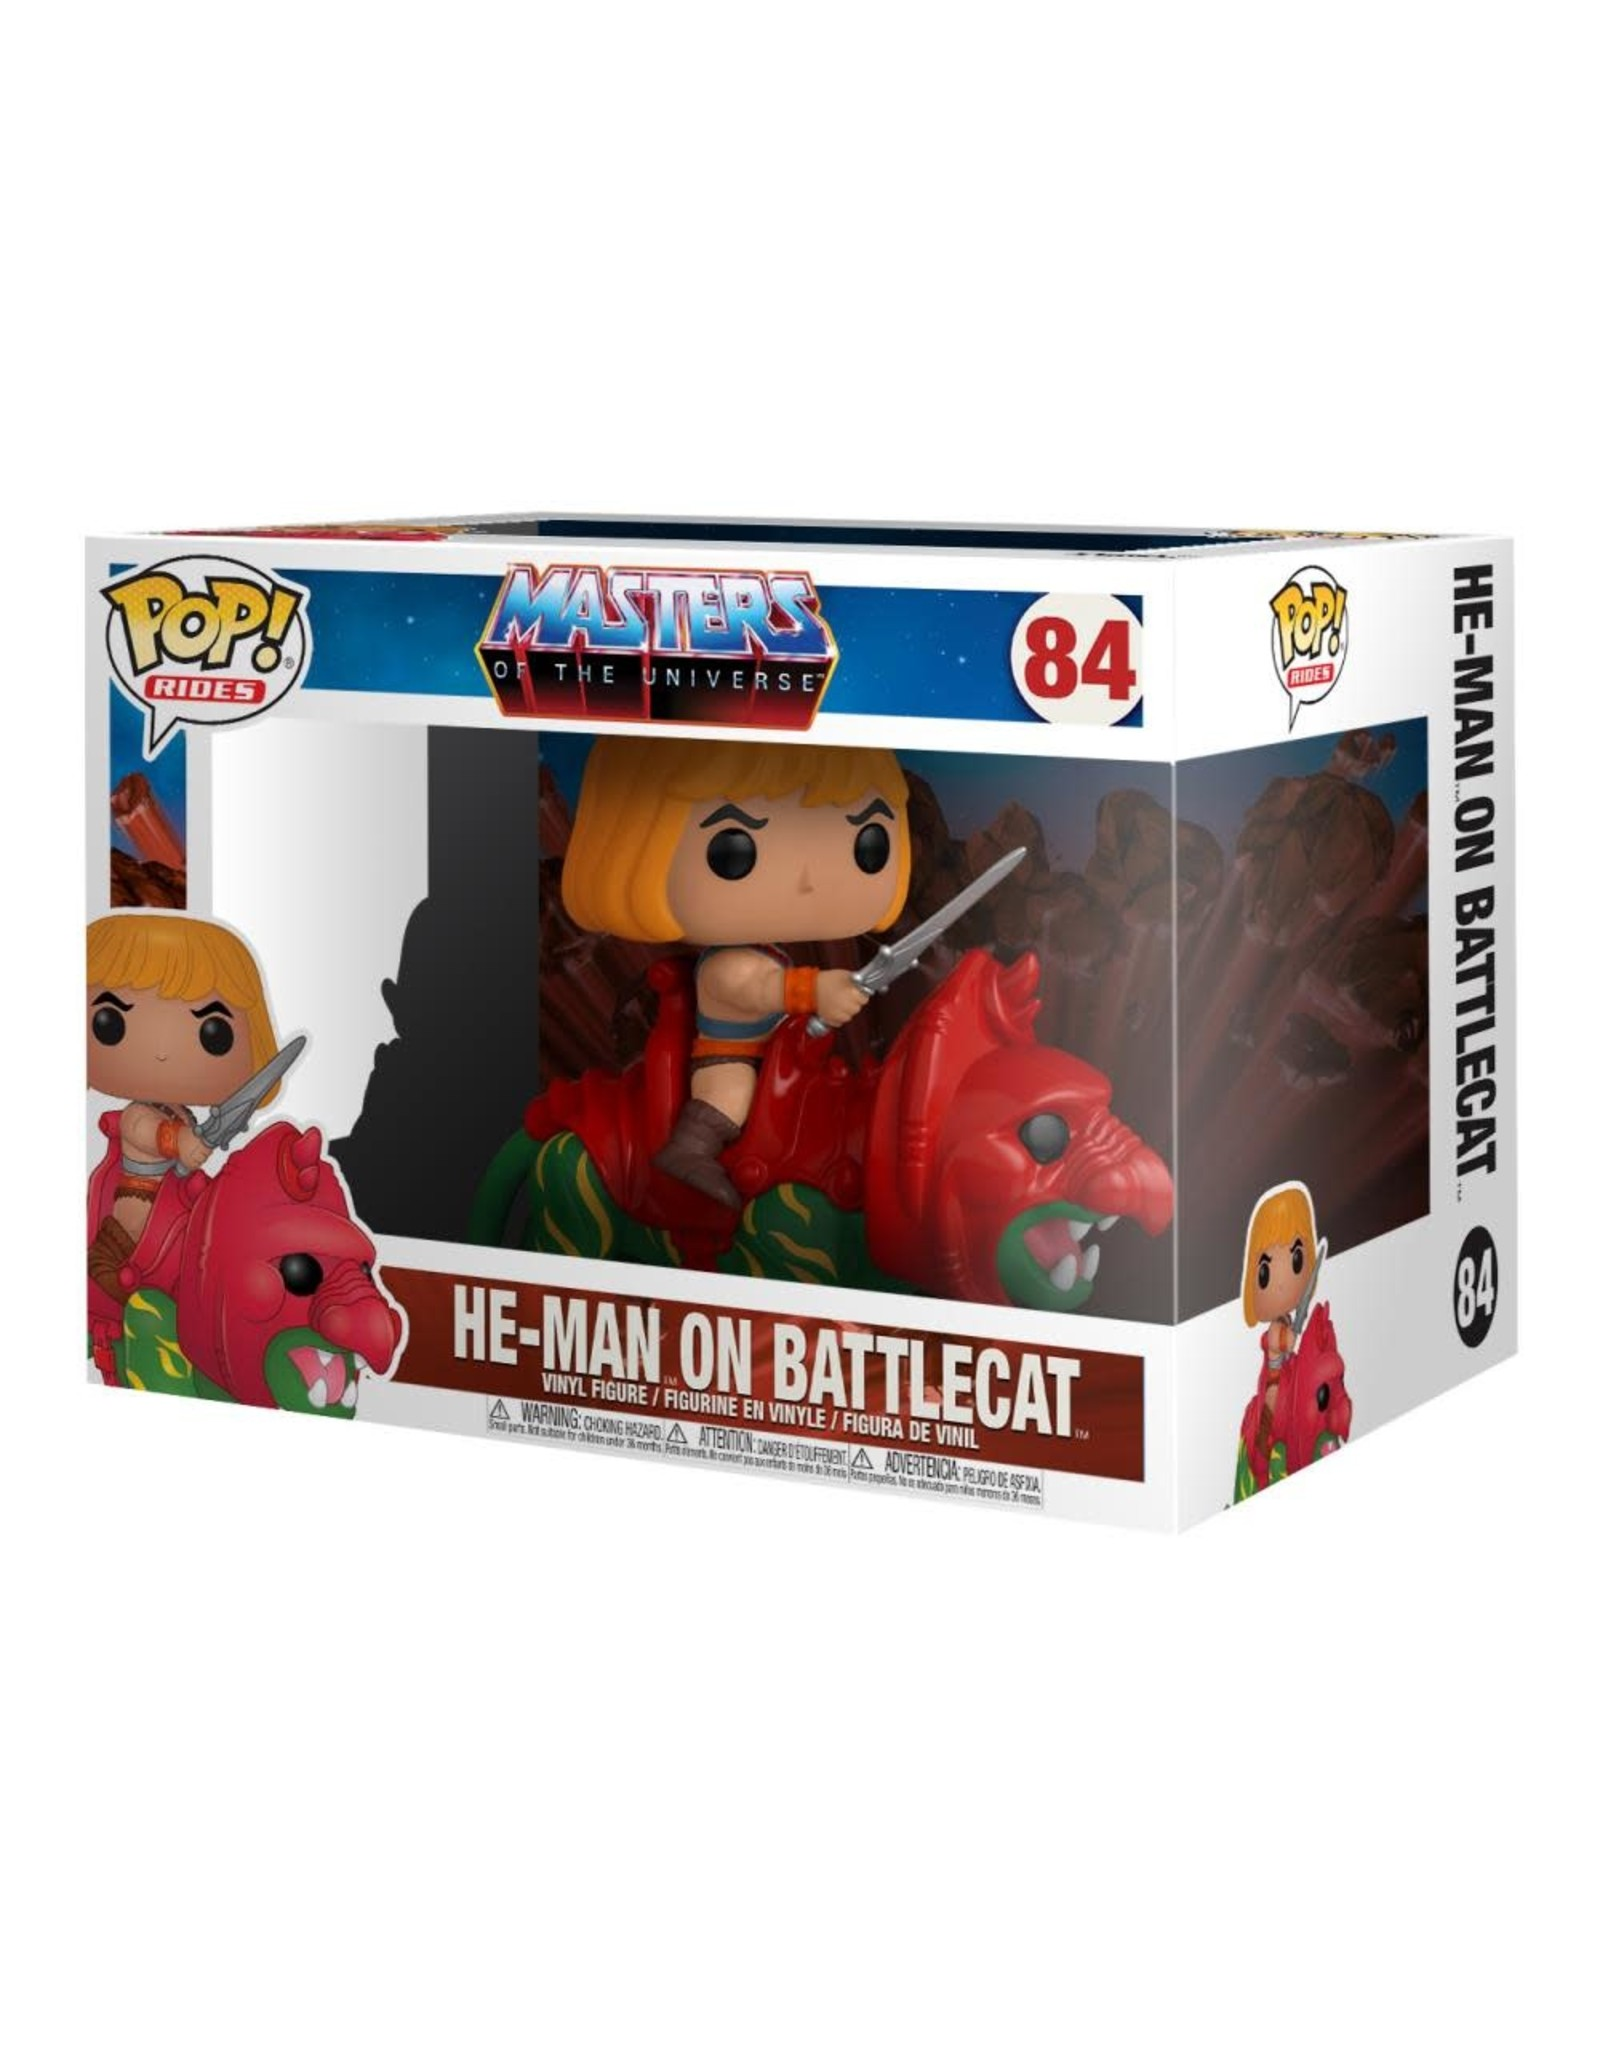 Funko Pop! Rides: Masters of the Universe - He-Man on Battle Cat